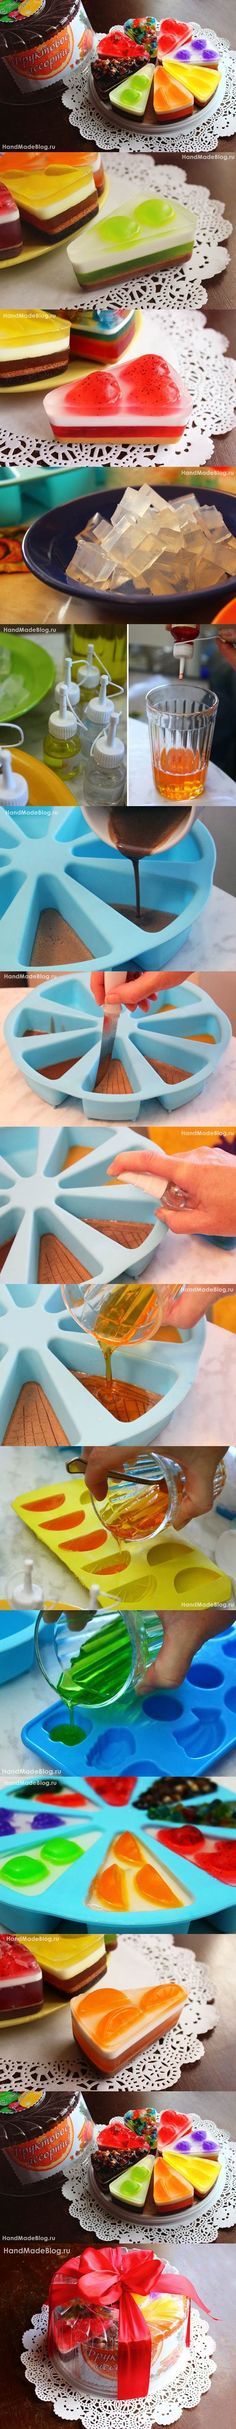 How to make cake soap diy diy ideas diy crafts do it yourself diy projects soap